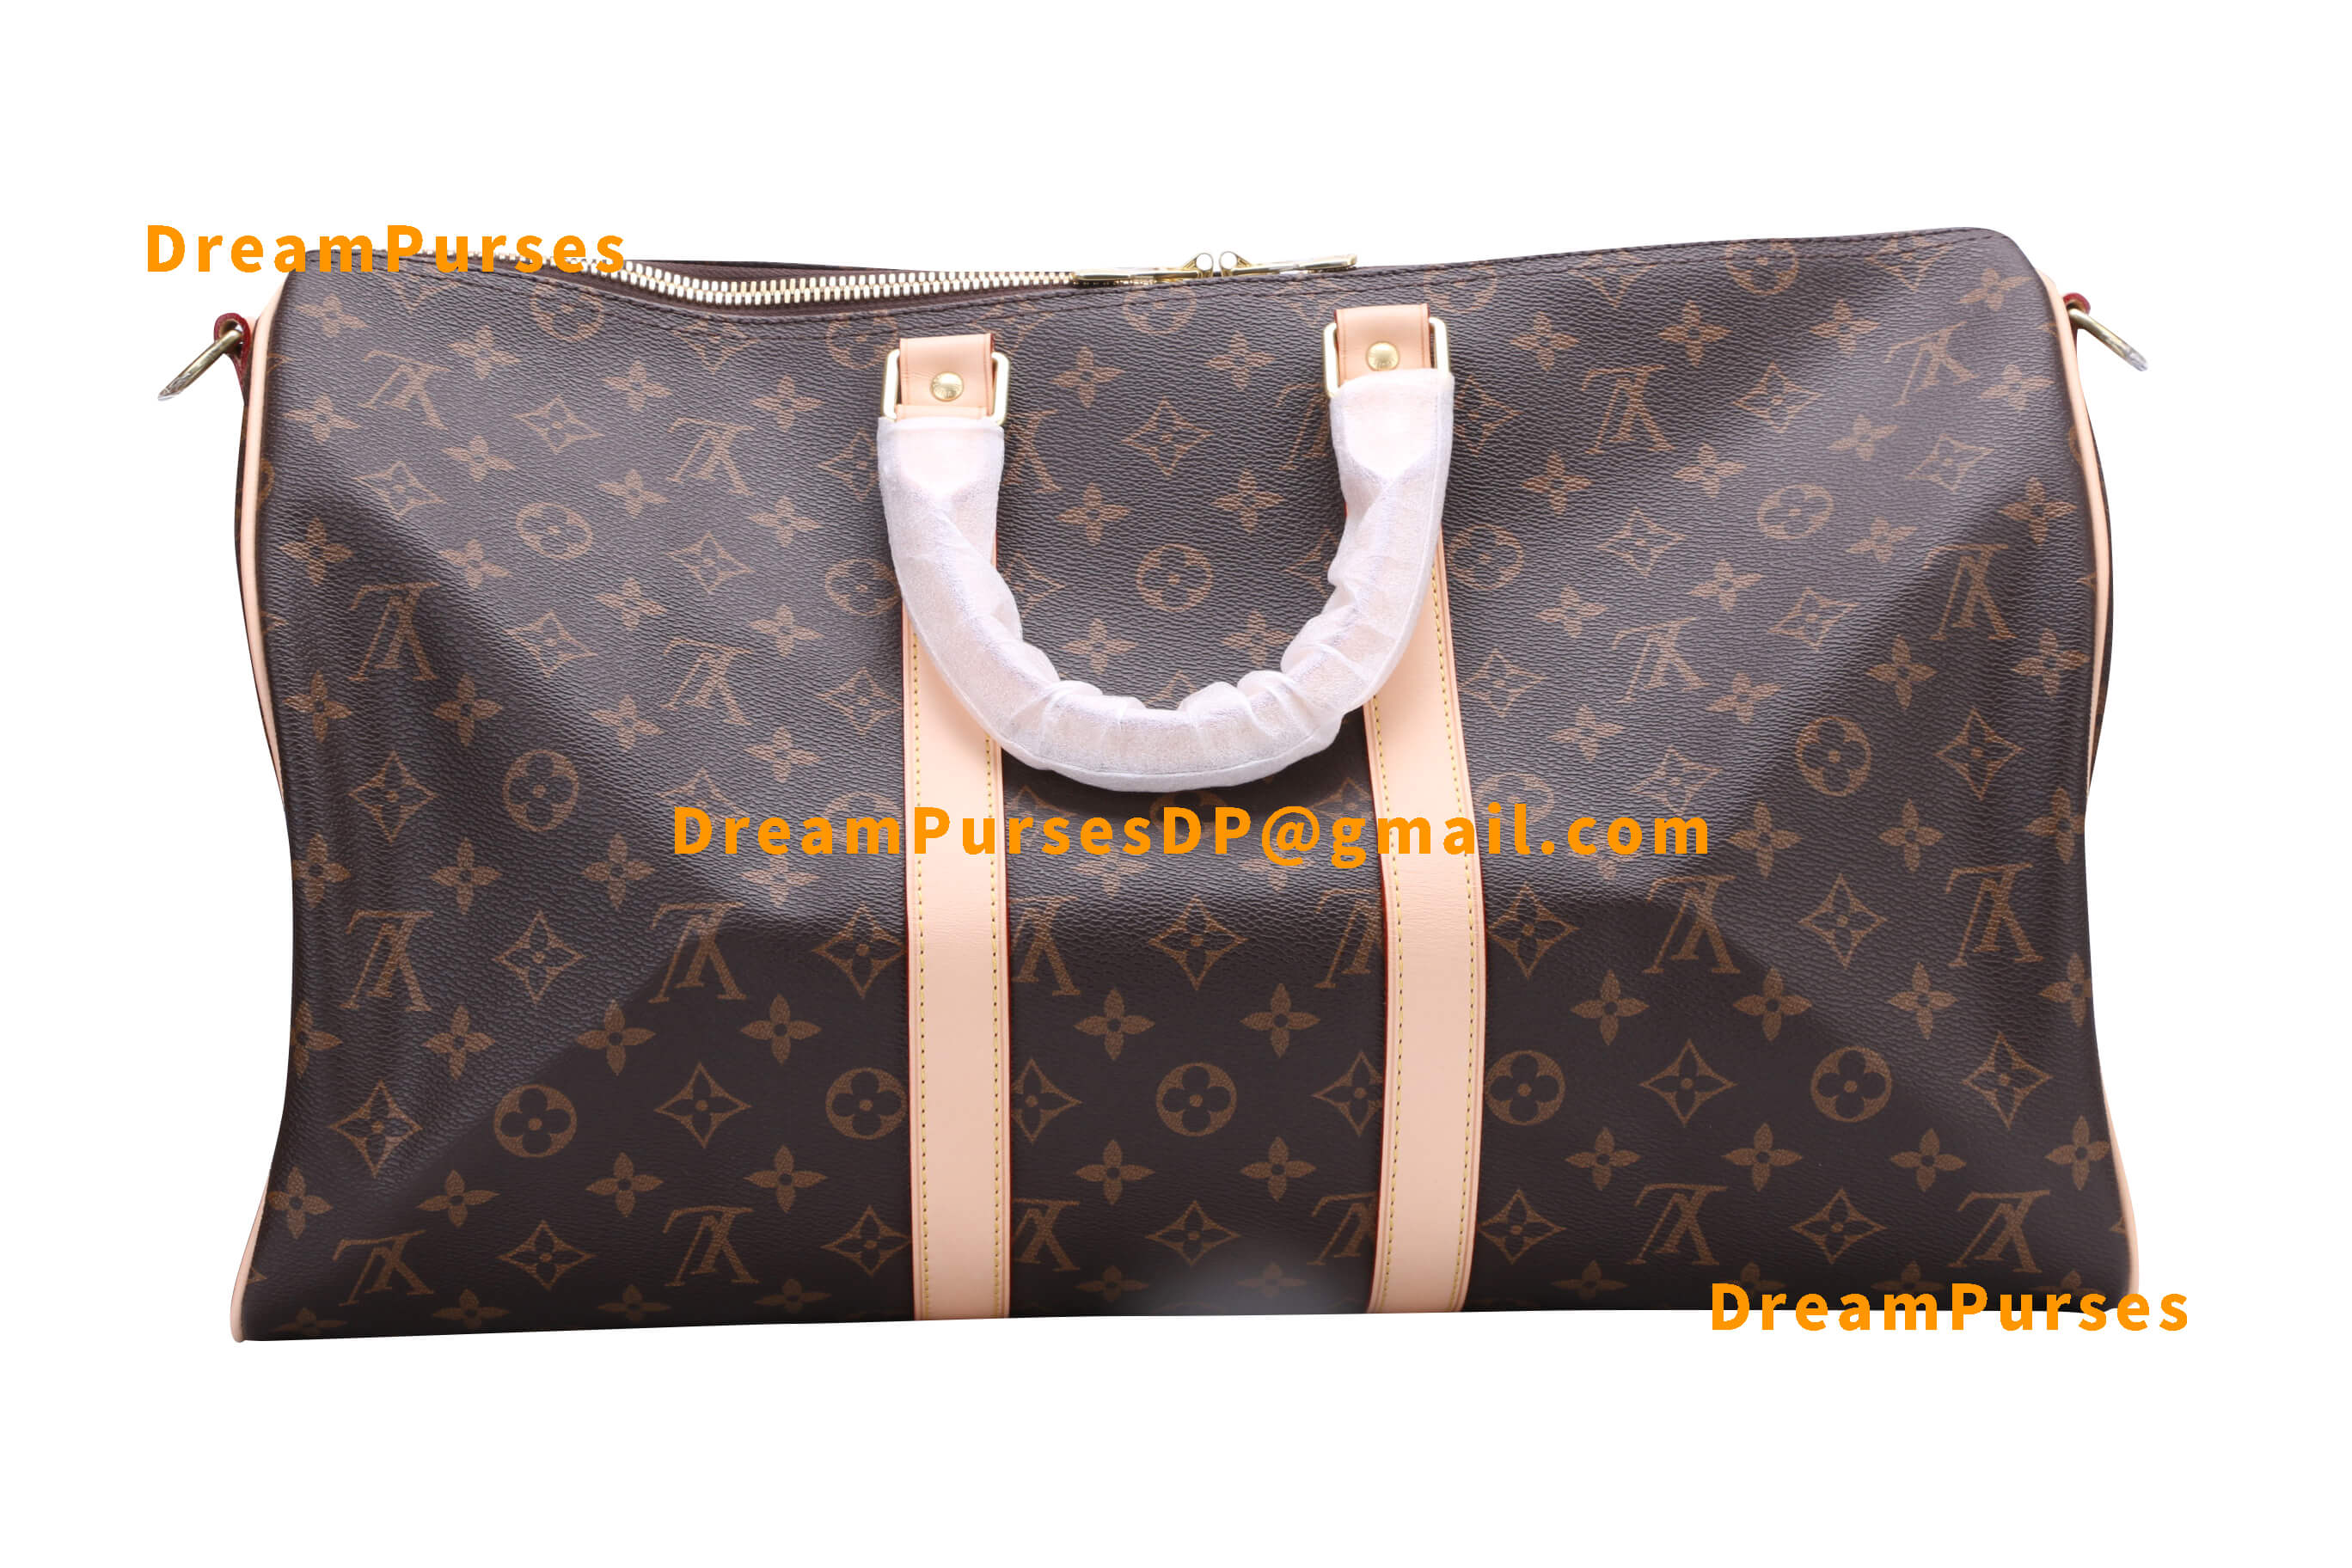 Replica Louis Vuitton Bags Quality vs